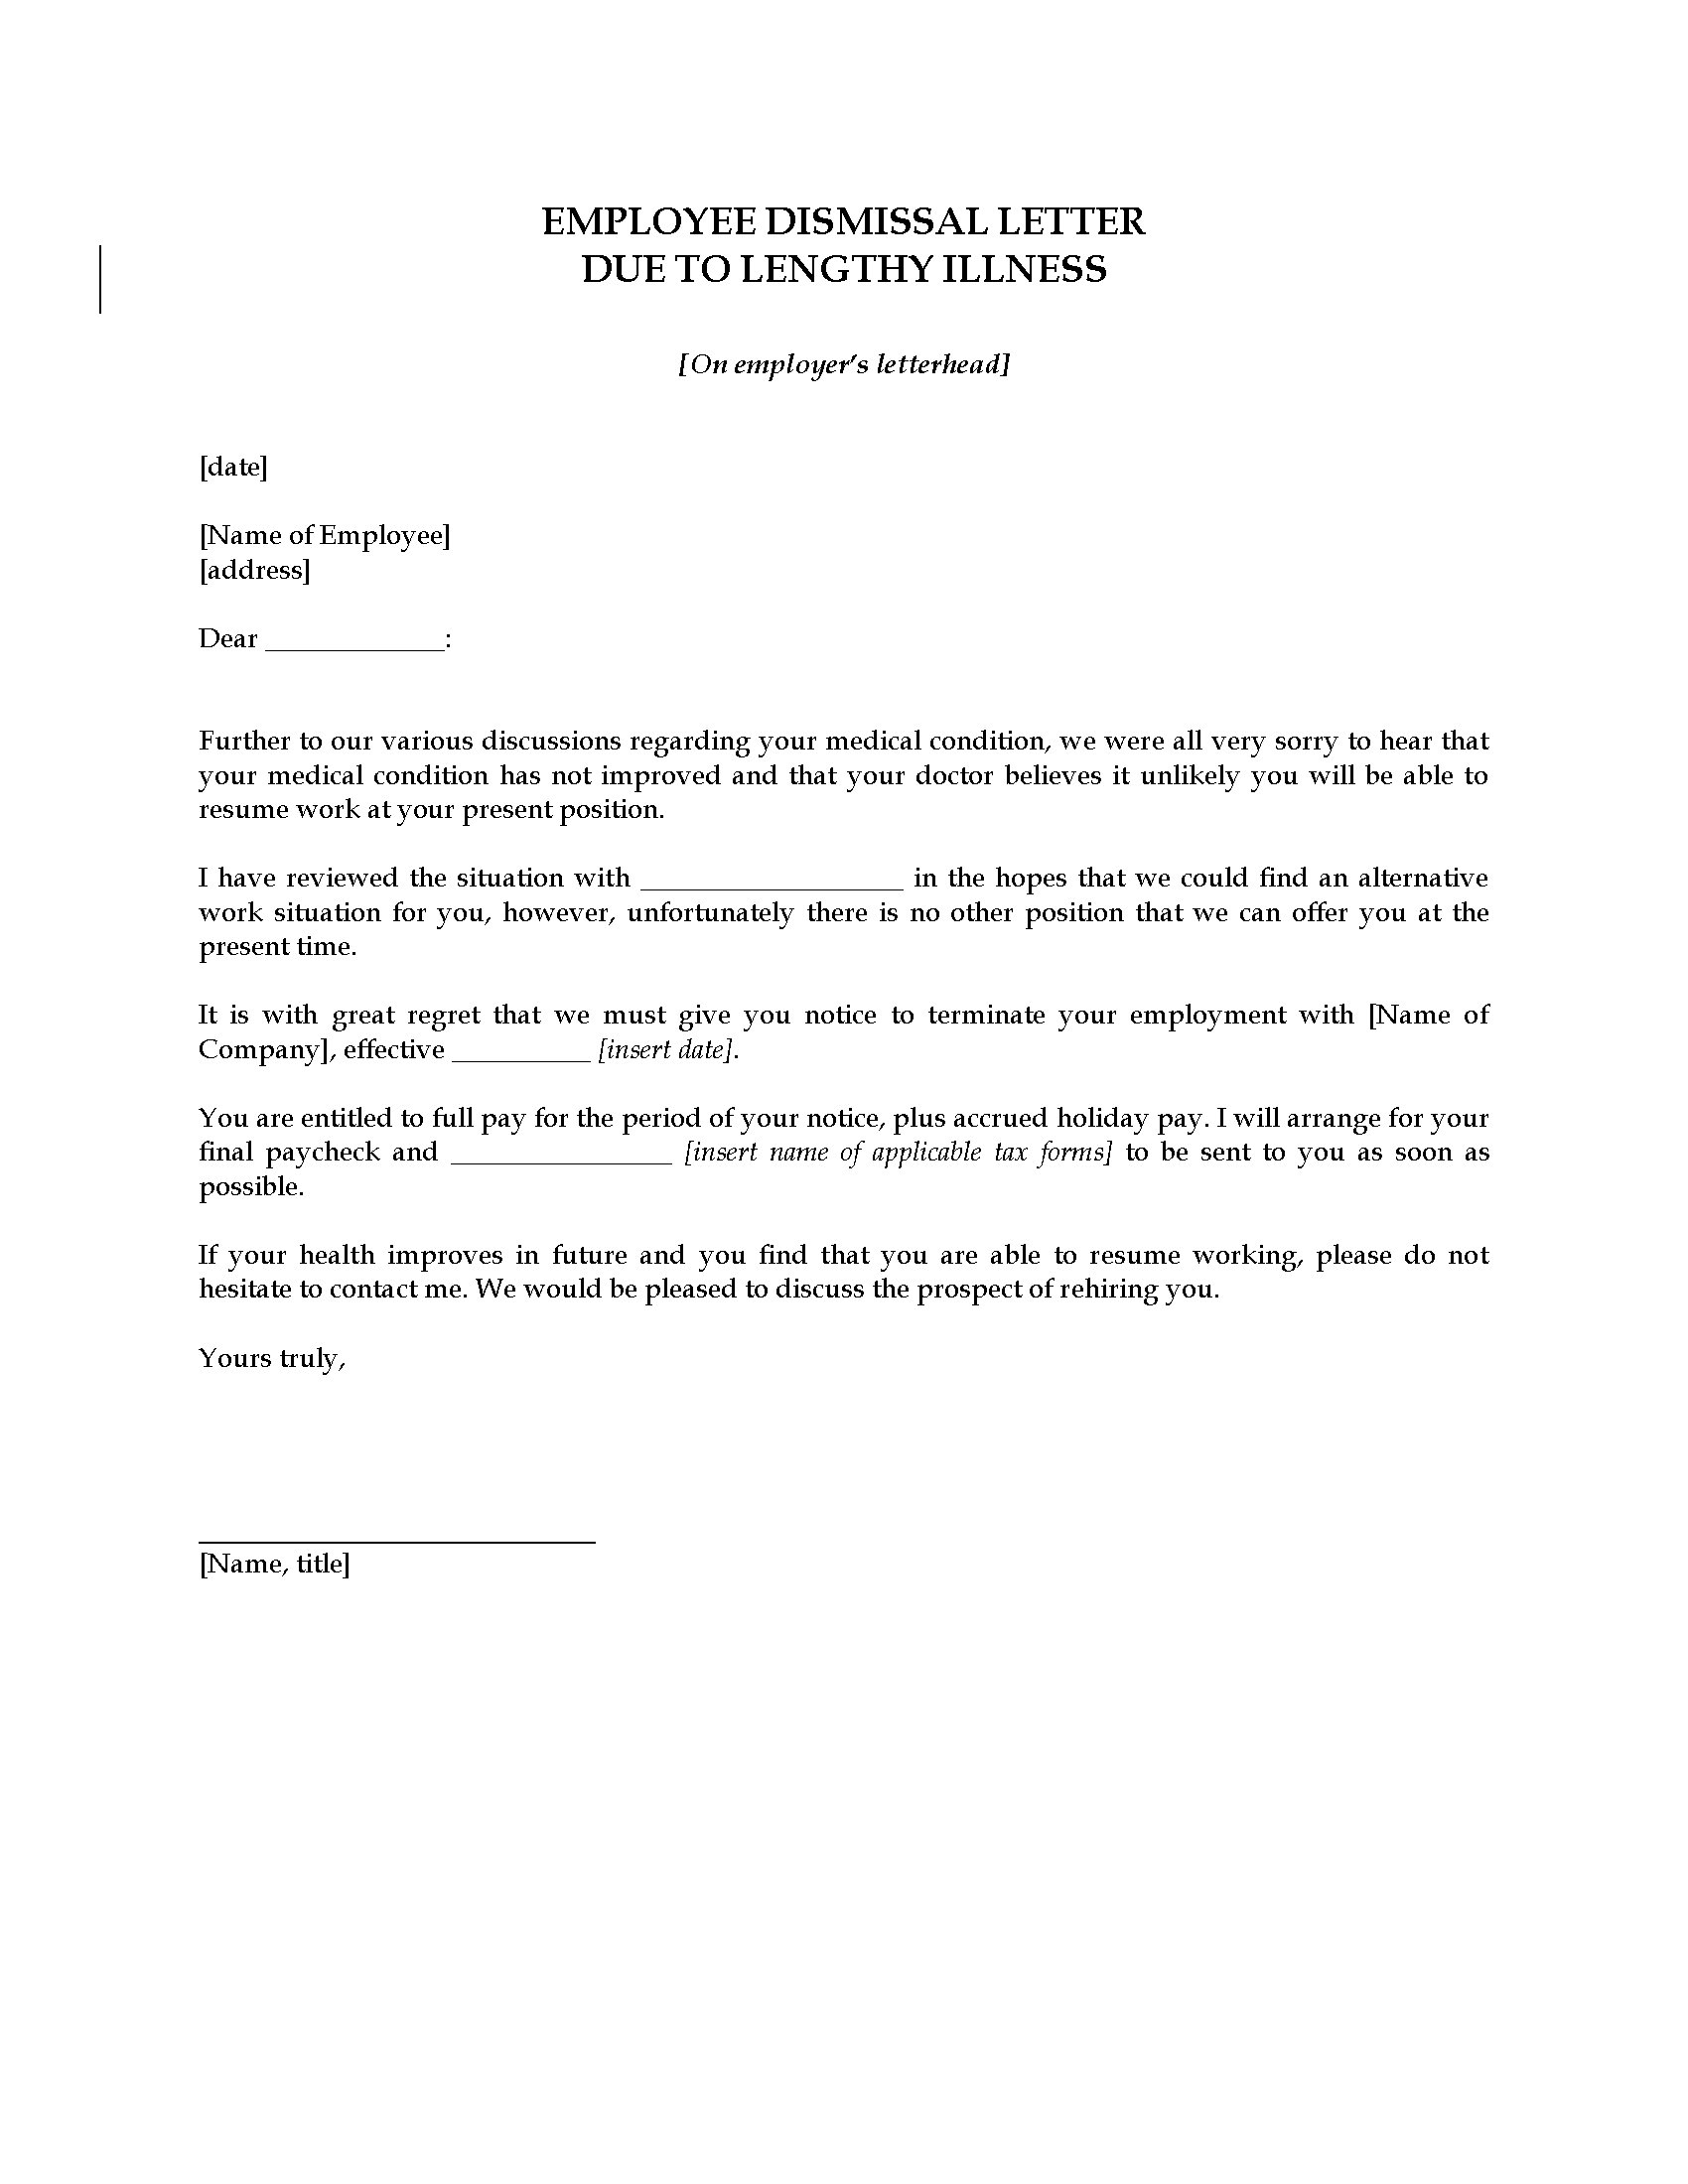 Employee Termination Letter Due to Lengthy Illness | Legal Forms ...